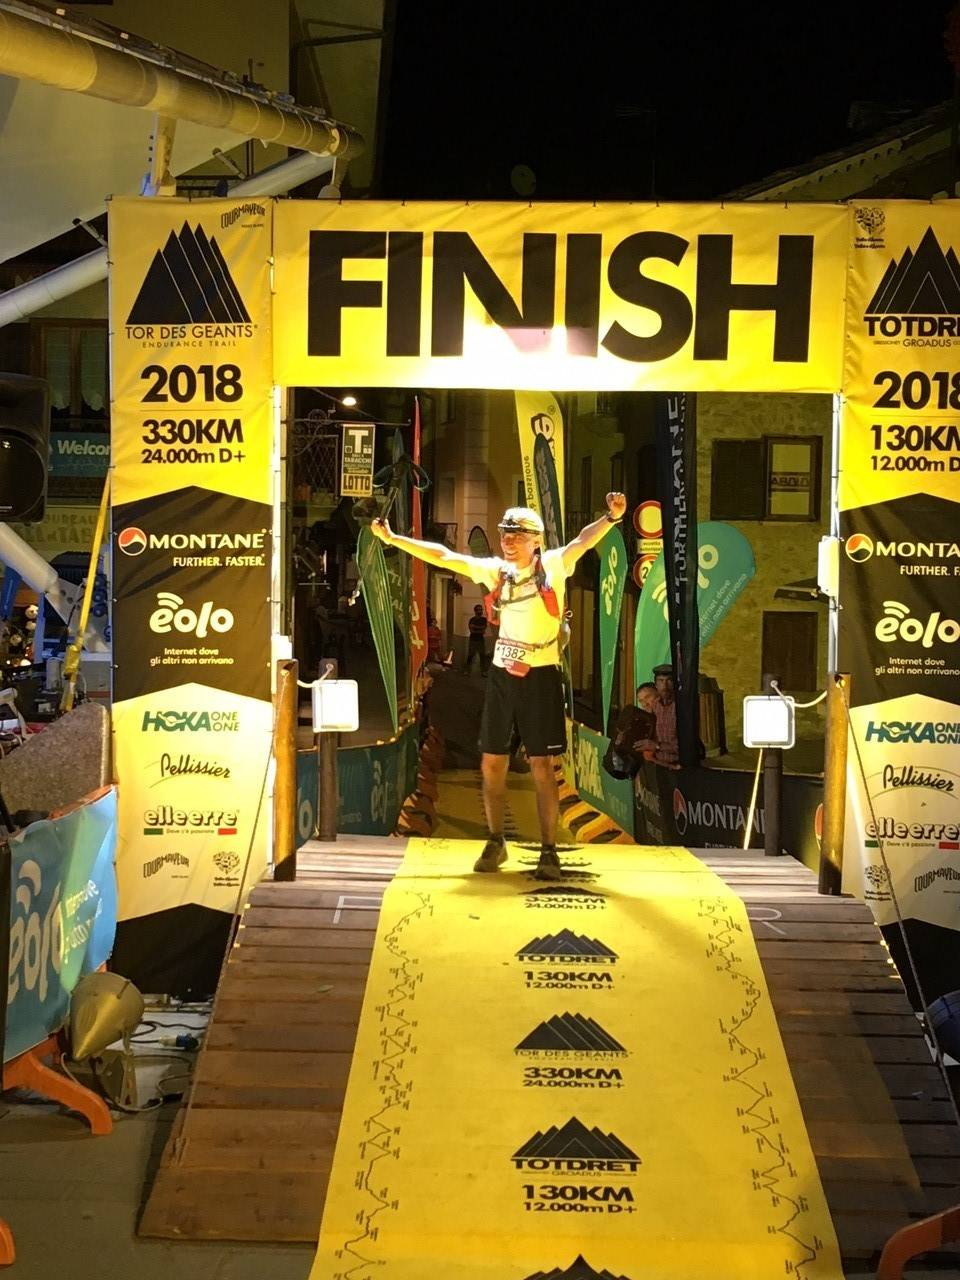 2018-09-12 Jens Lukas Finisher 2018 - 6.Pl. - Tor de Geants